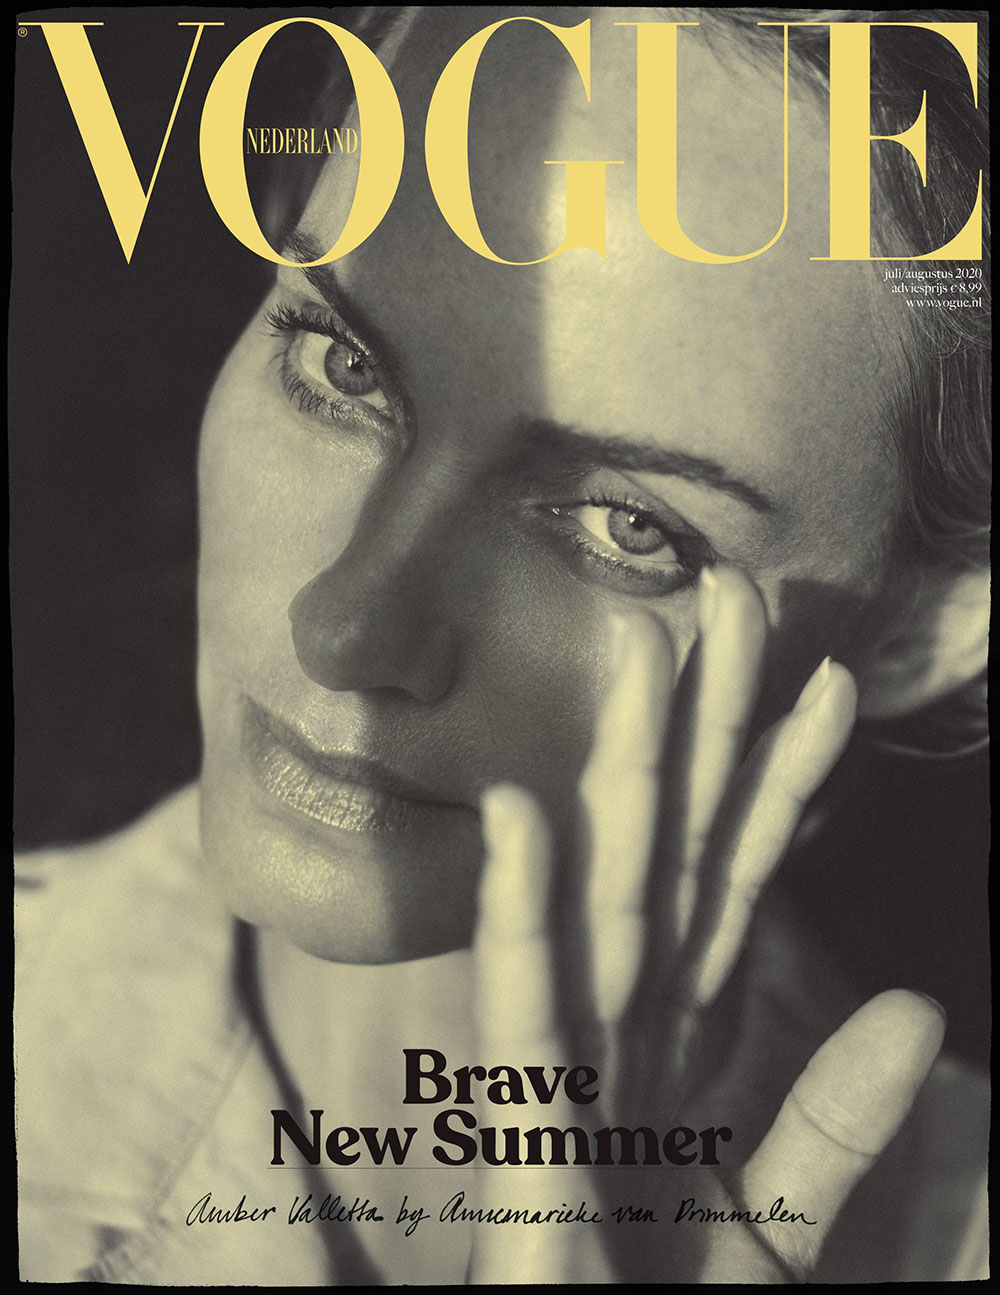 Amber Valletta covers Vogue Netherlands July August 2020 by Annemarieke van Drimmelen